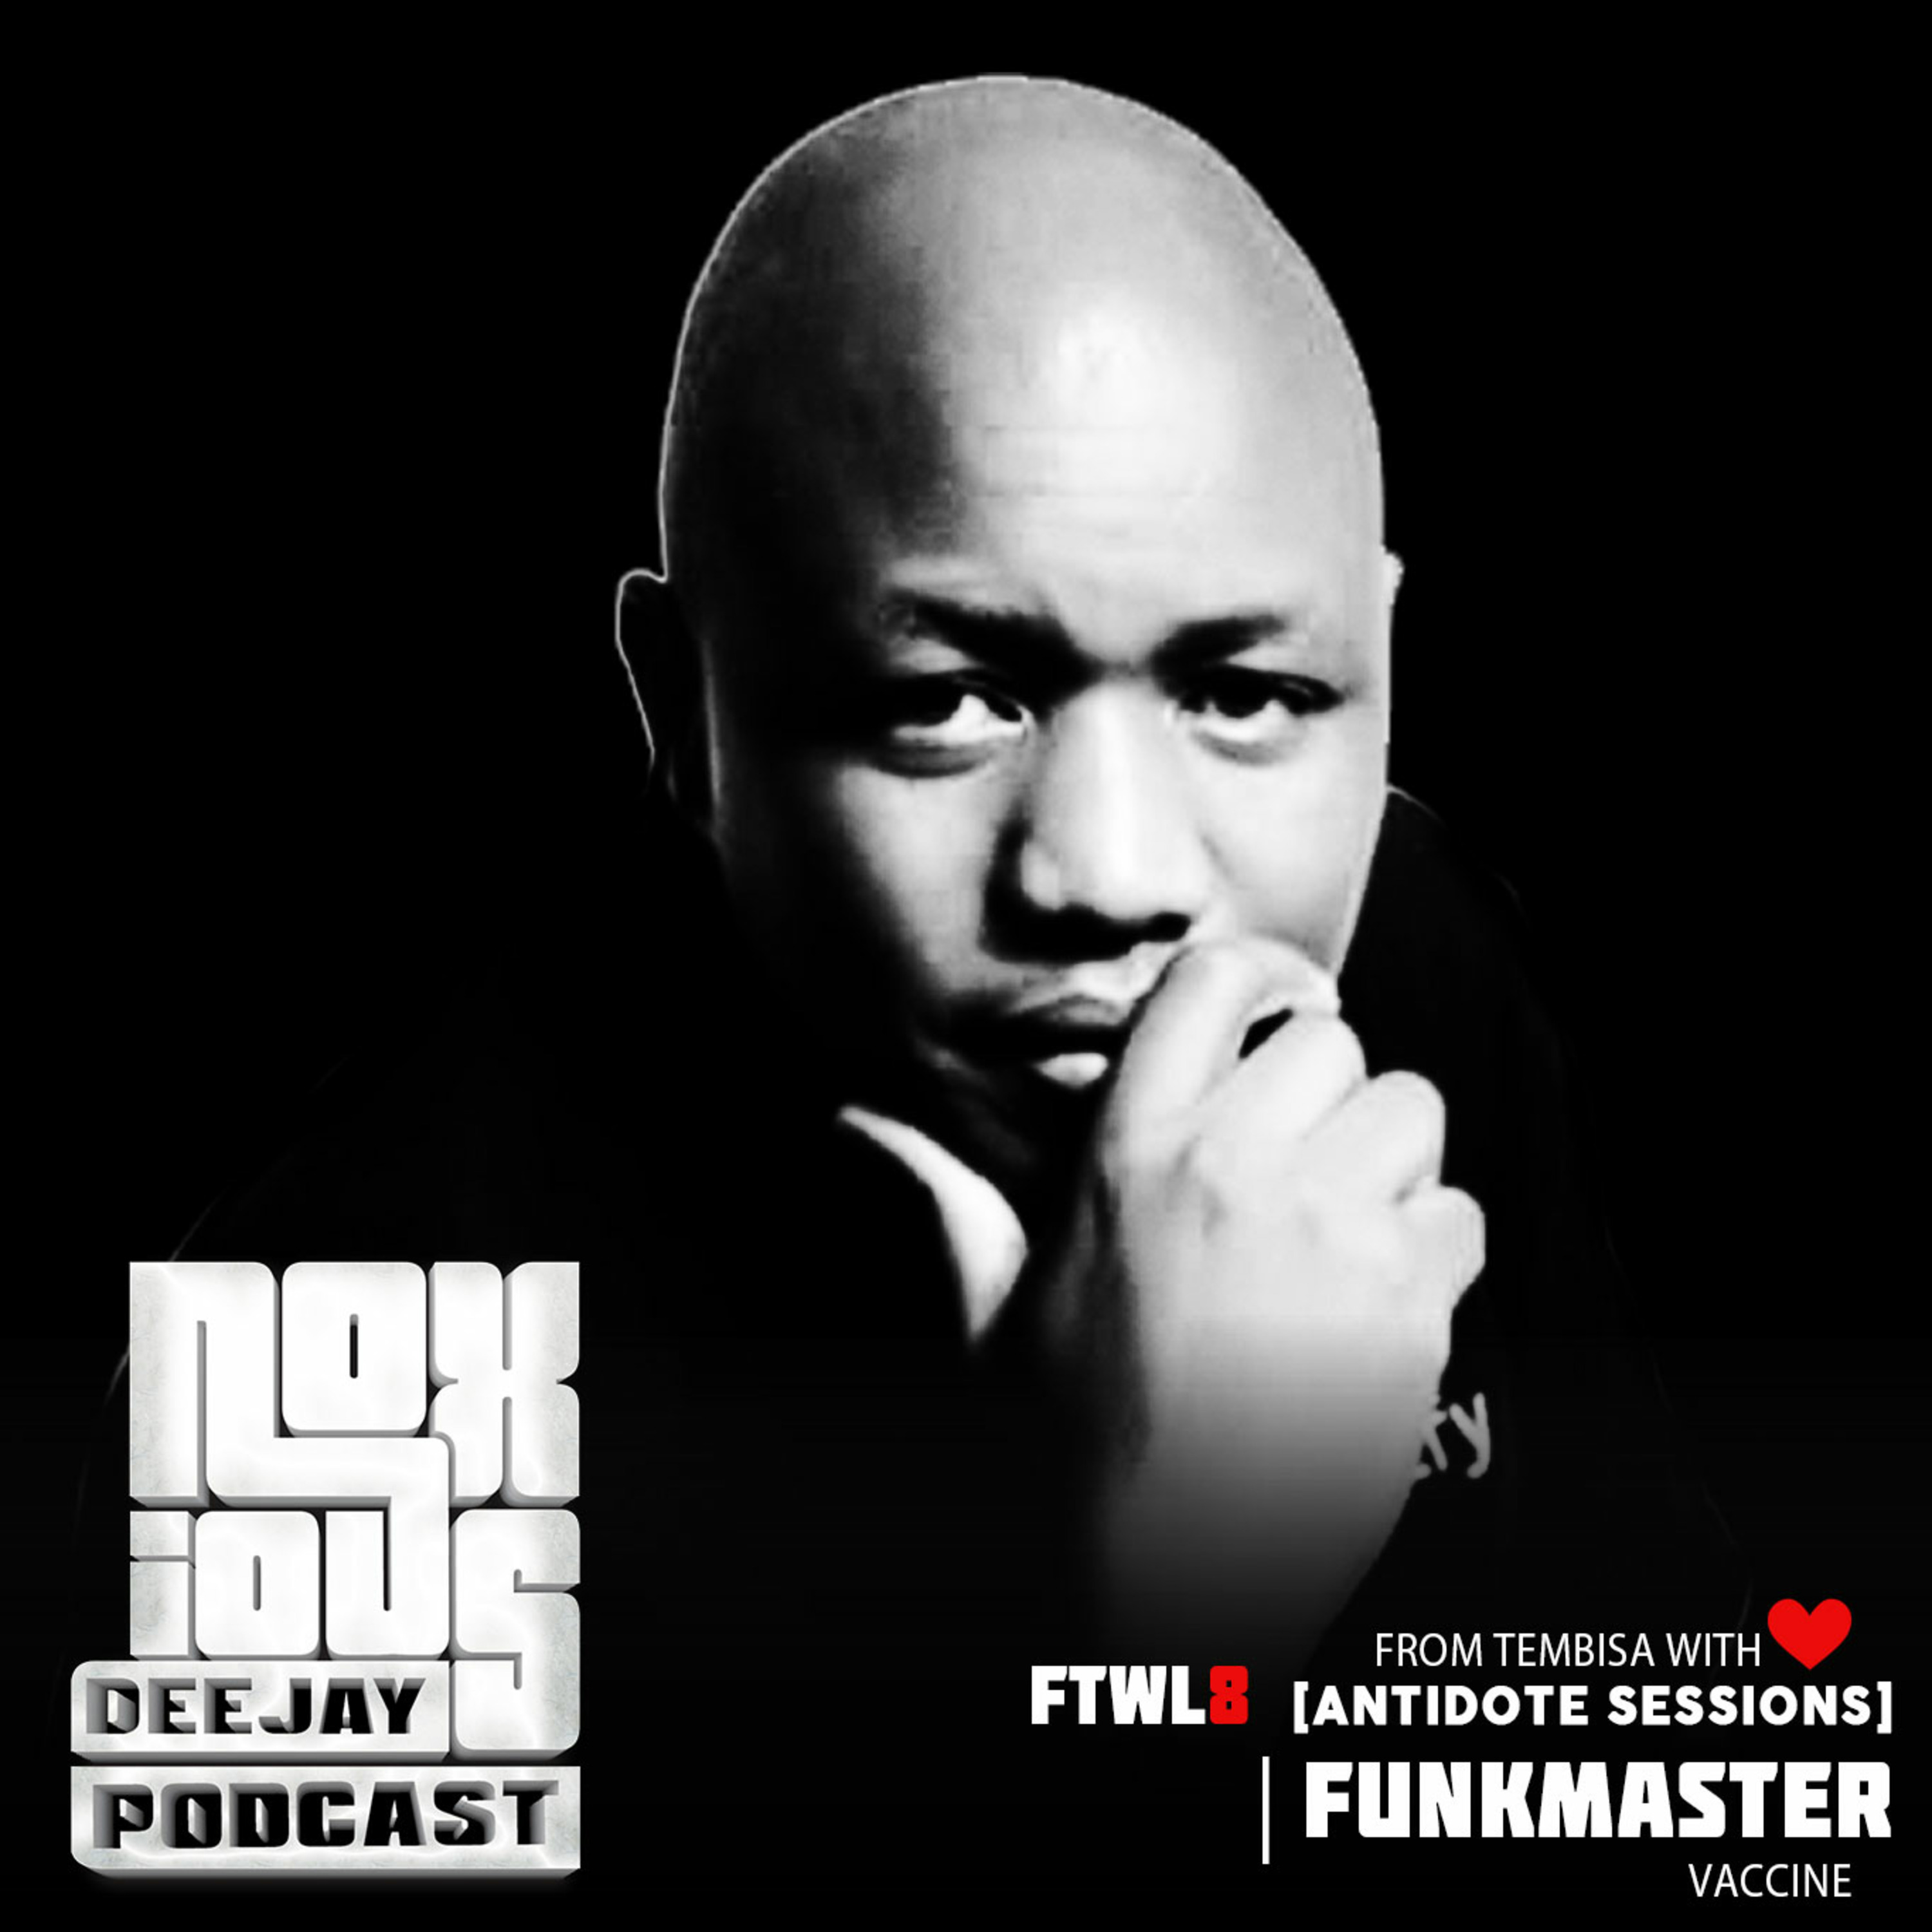 FTWL8 [Antidote Sessions] Funkmaster Vaccine